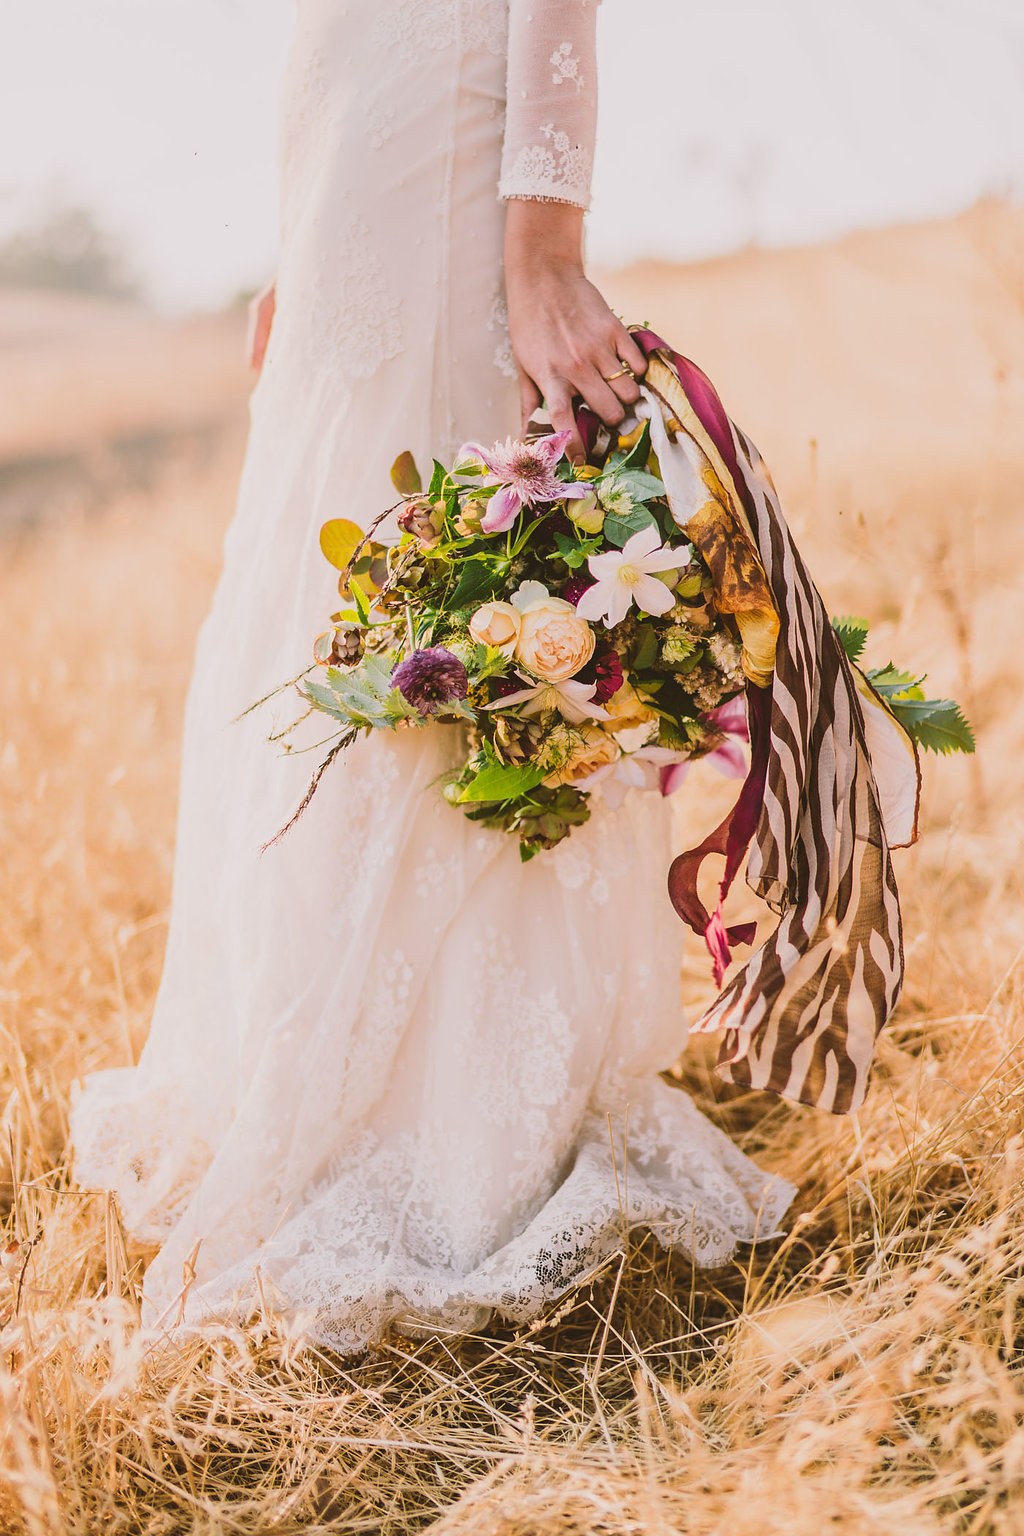 wedding bouquets with burgundy ribbons - photo by Michelle Roller http://ruffledblog.com/wild-safari-inspiration-shoot-with-a-jeep